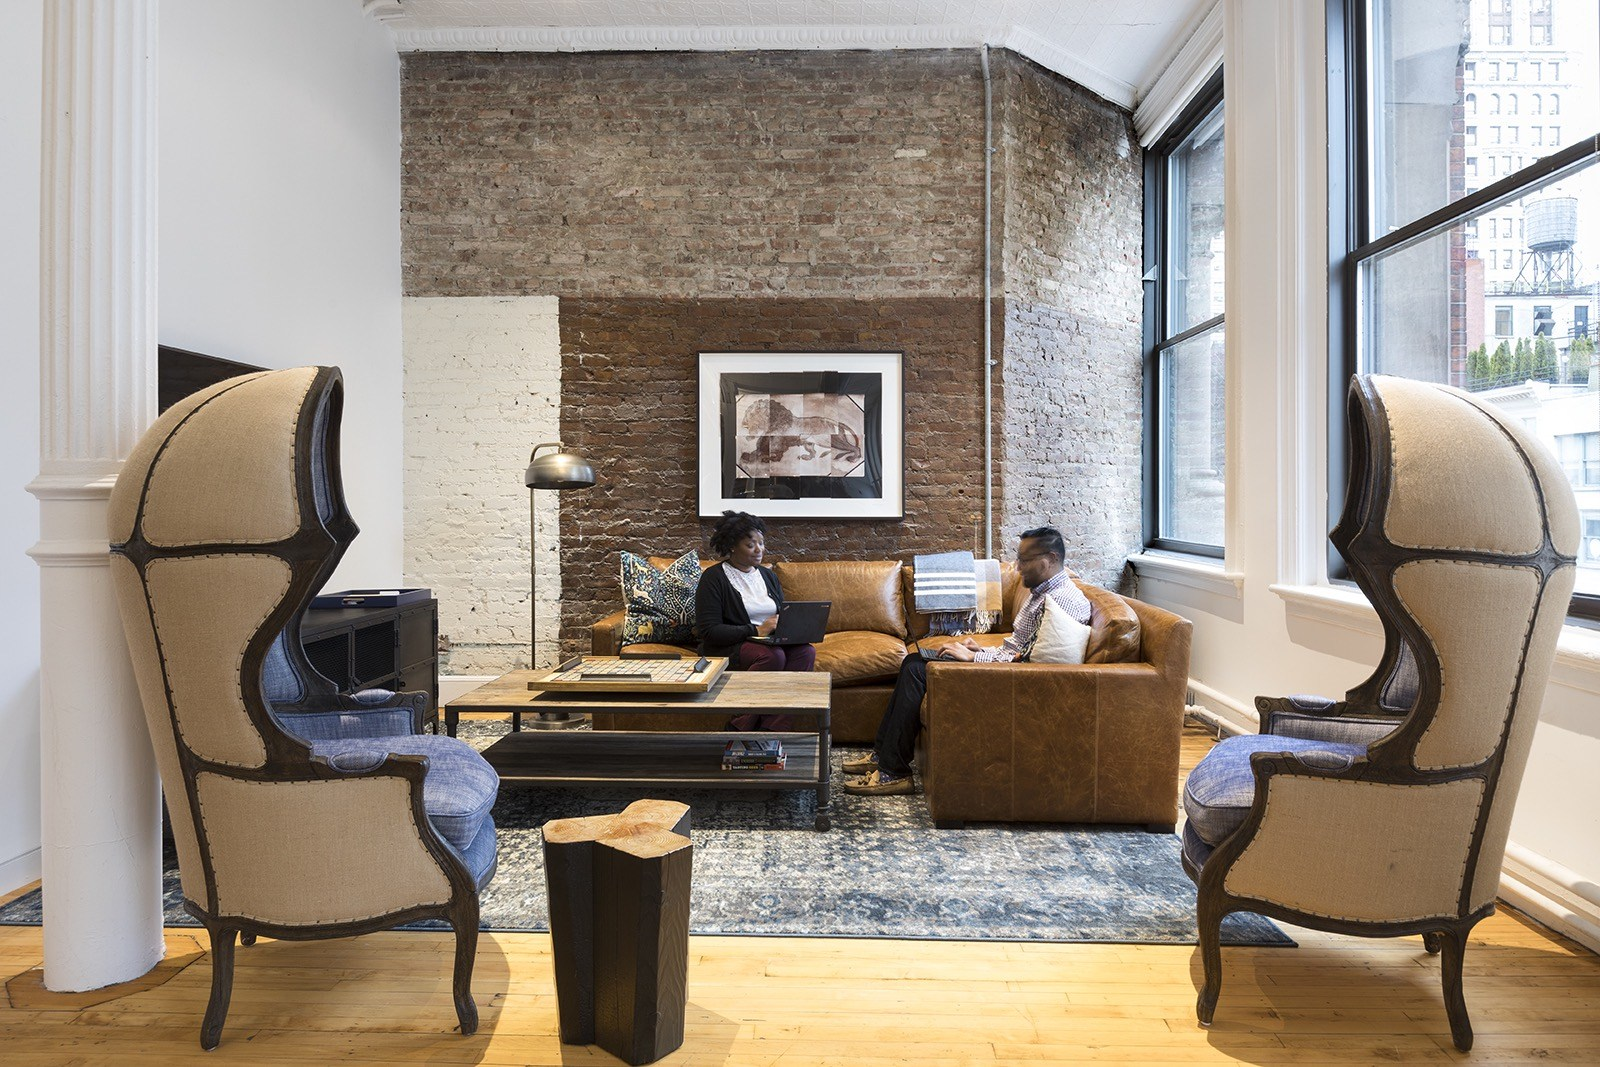 People sitting and working together in a rustic designed lounge area in the New York office of Edrington Spirits, a privately owned international spirits company. MEP by 2L Engineering..